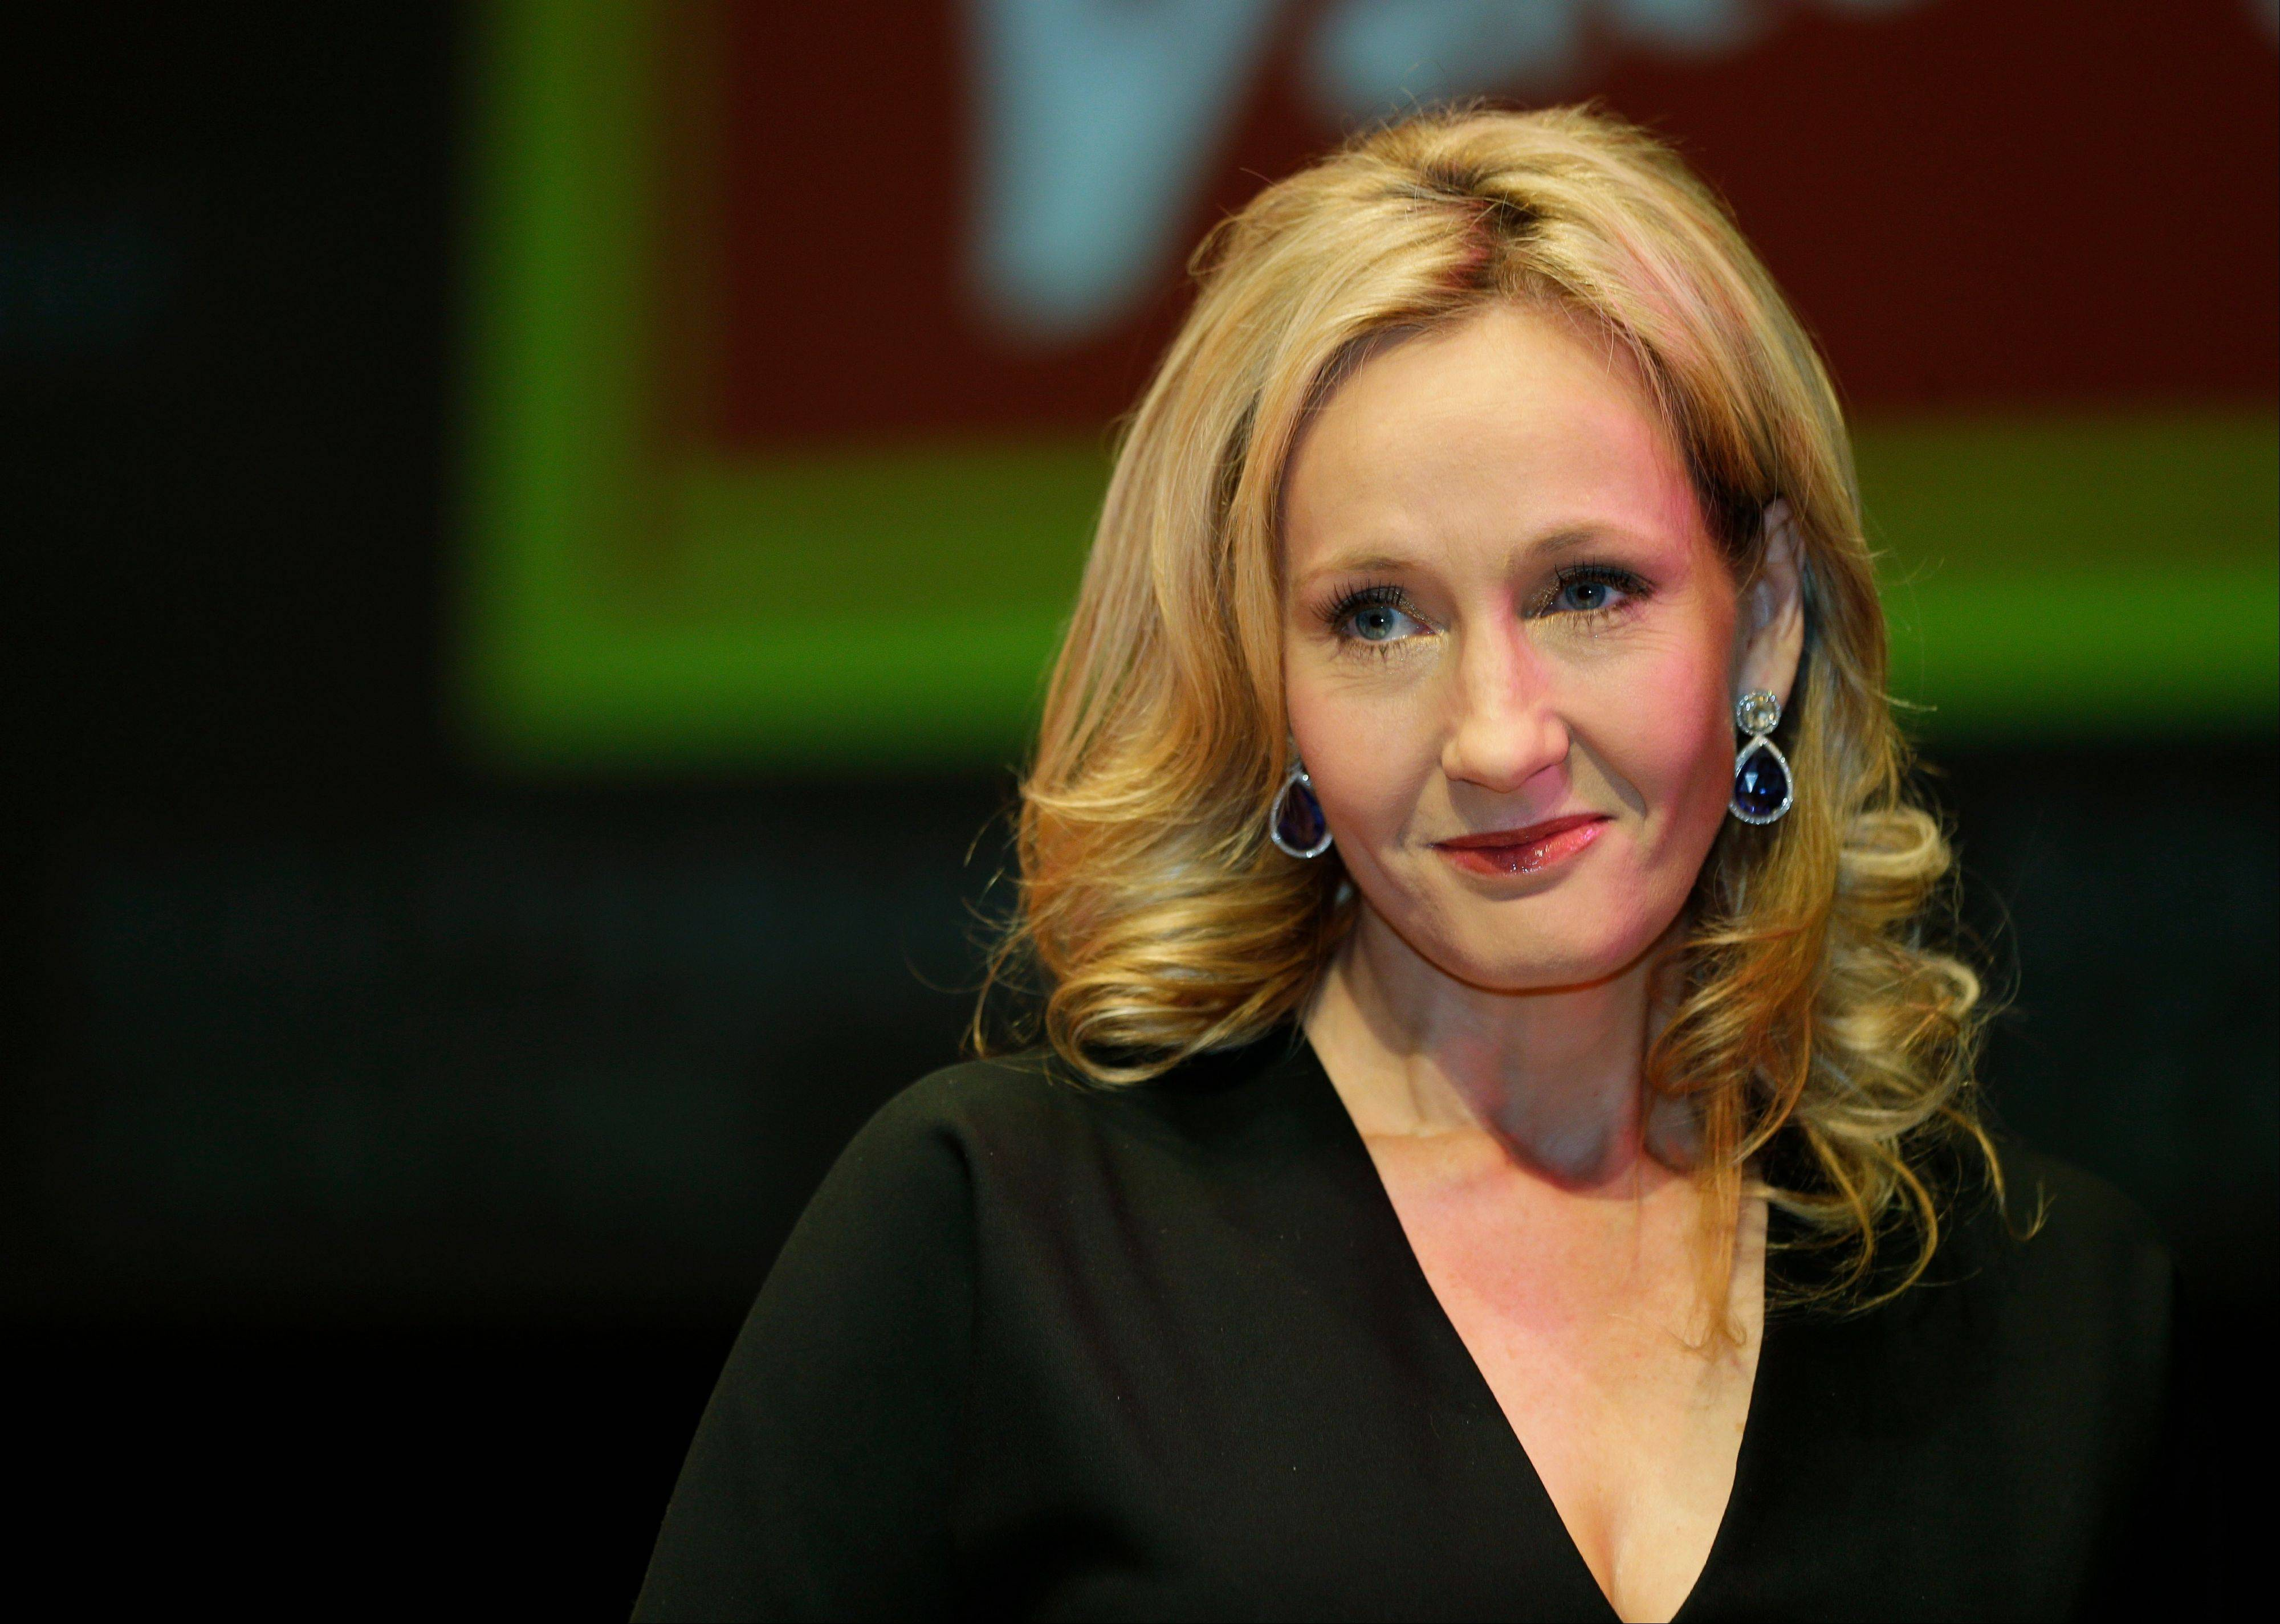 Author J.K. Rowling during a photo call to unveil her new book, entitled: 'The Casual Vacancy', at the Southbank Centre in London. Celebrities including author J.K. Rowling and actor Hugh Grant are accusing the government of letting down victims of media intrusion. They are urging lawmakers to back new measures to rein in Britain�s unruly press.